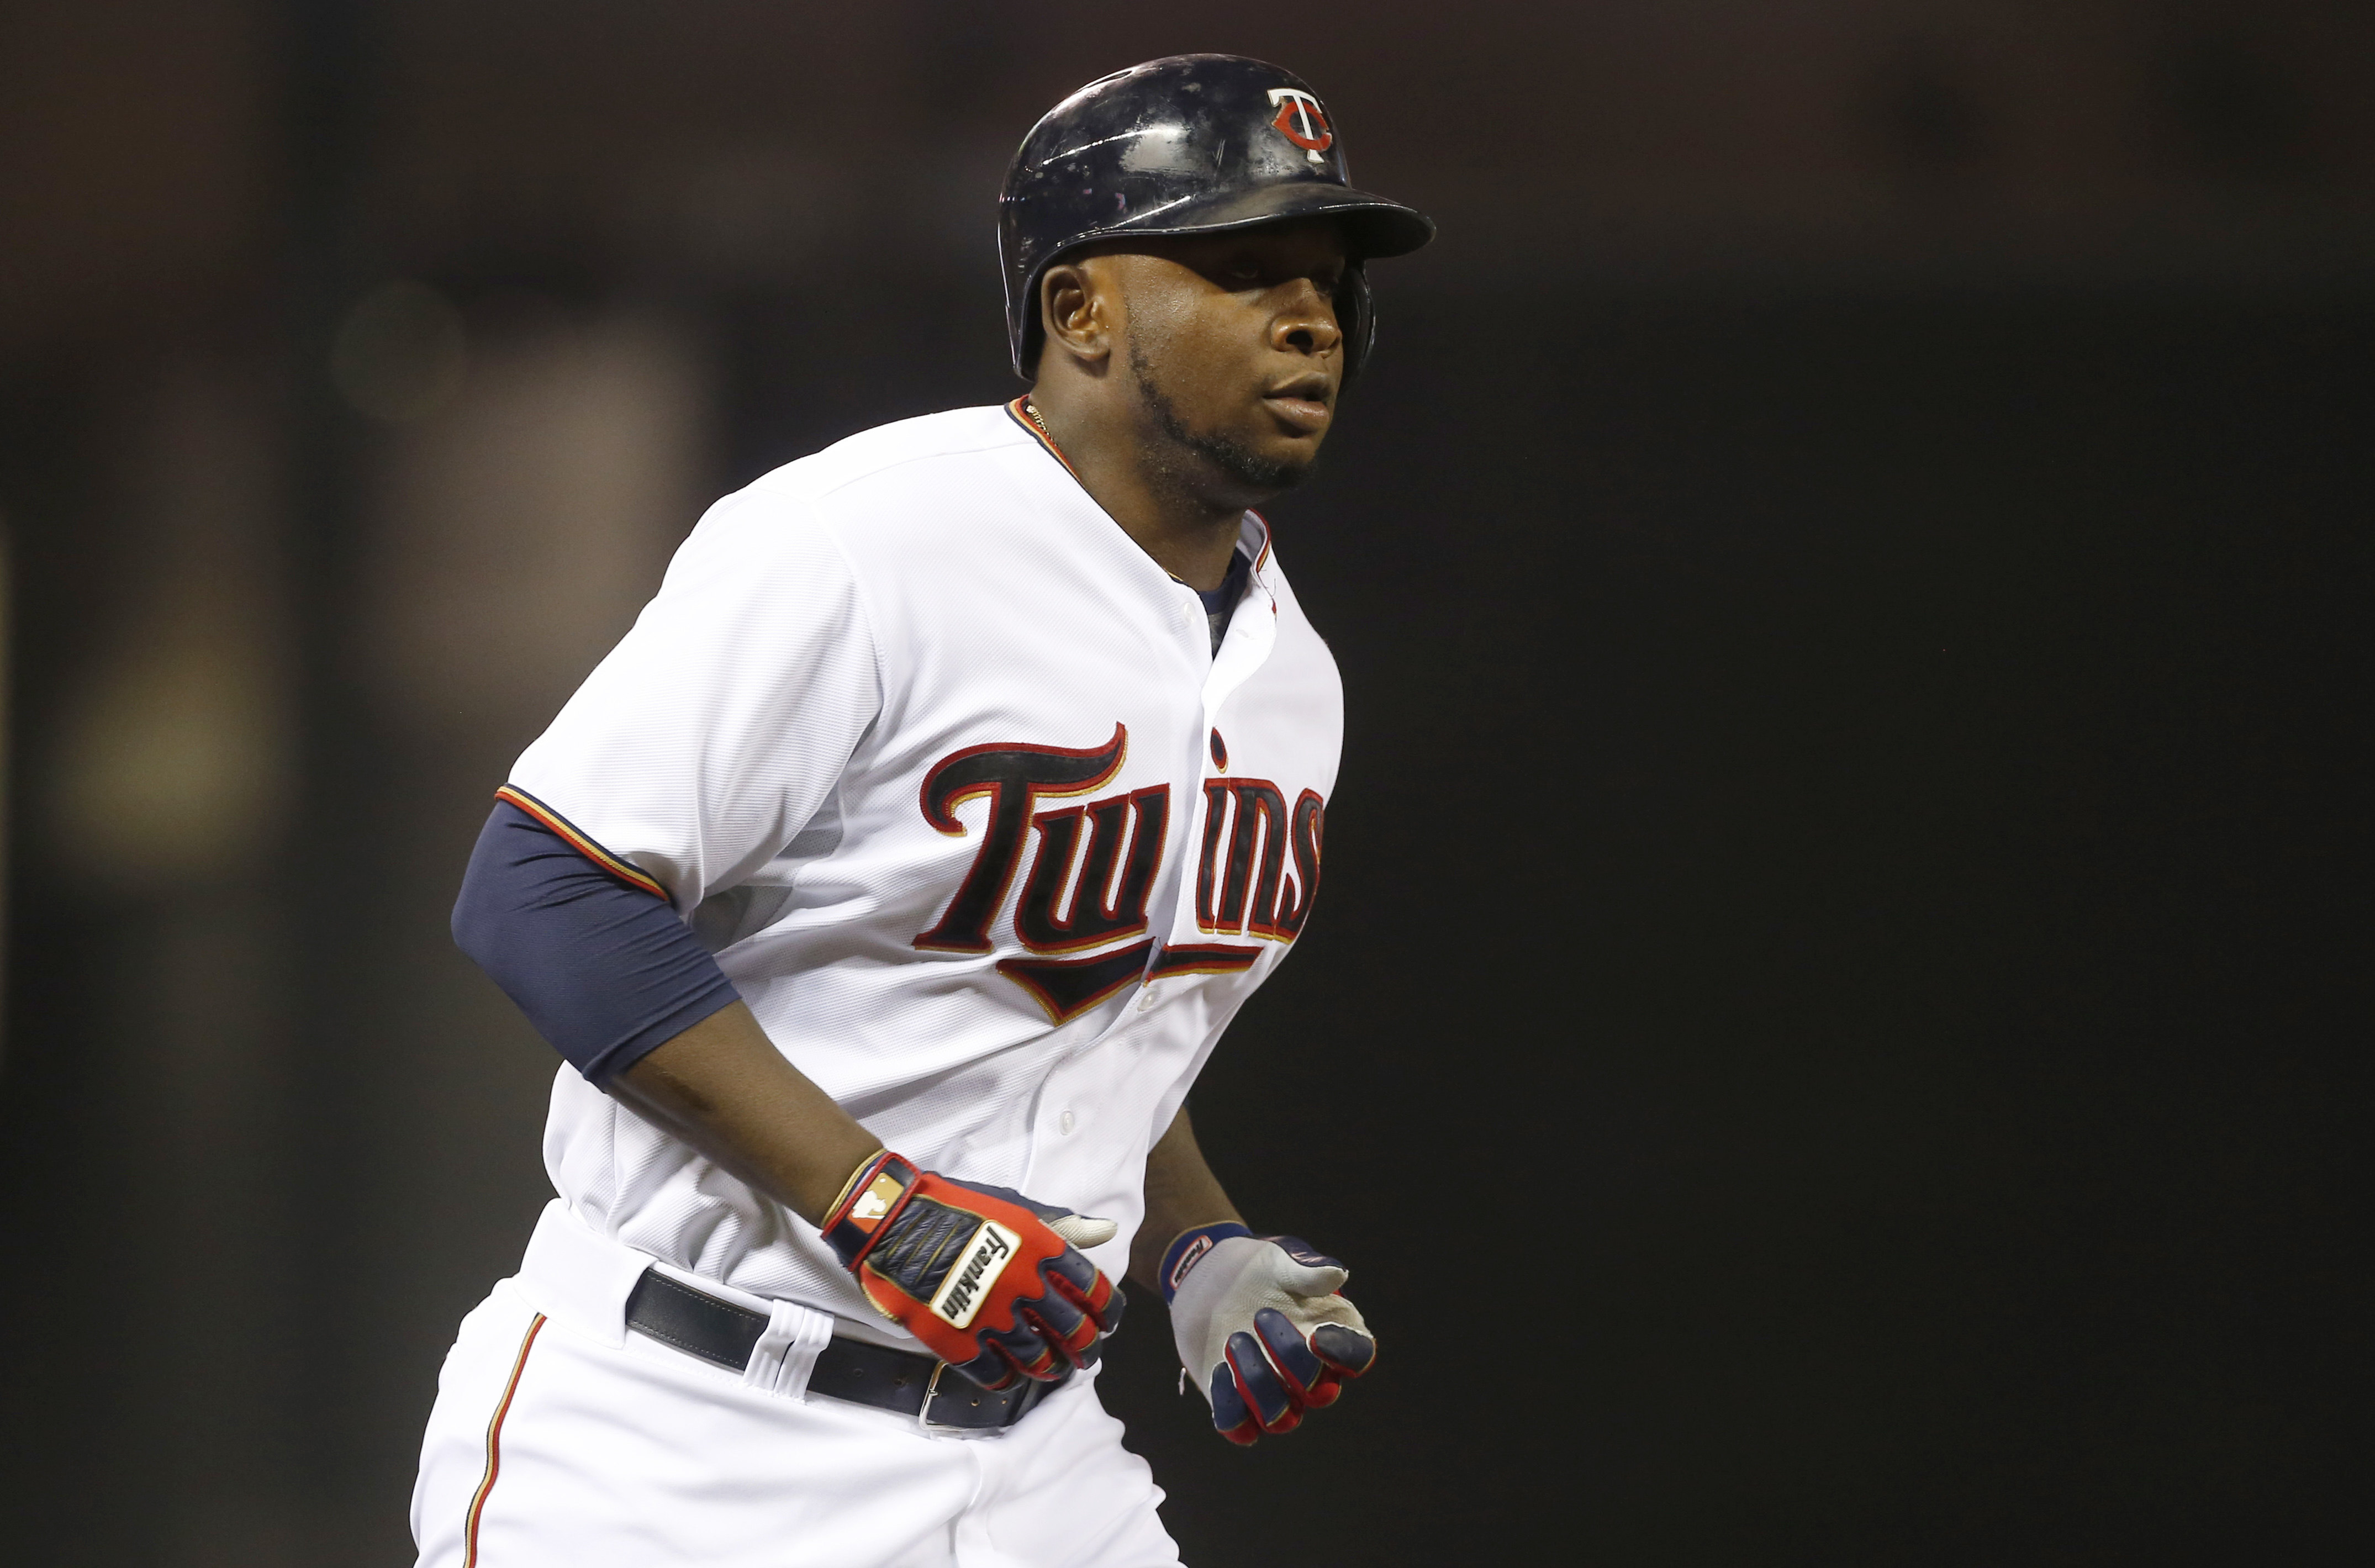 Minnesota Twins' Miguel Sano heads for home on a solo home run off Chicago White Sox relief pitcher Nate Jones during the eighth inning of a baseball game, Tuesday, Sept. 1, 2015, in Minneapolis. The Twins won 8-6. (AP Photo/Jim Mone)